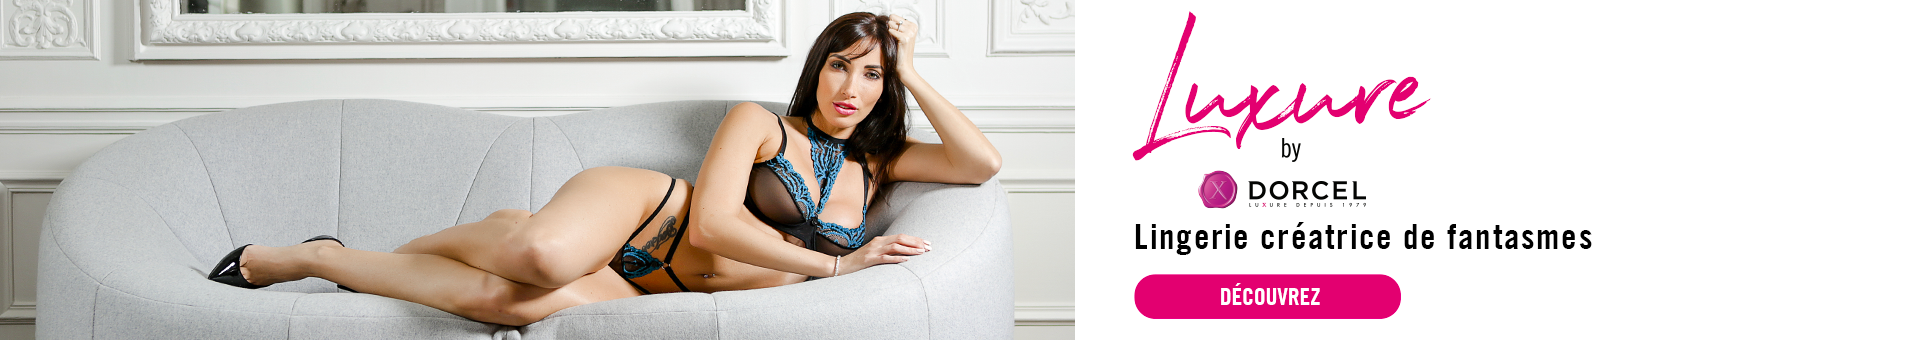 Luxure by Dorcel - Collection Lingerie Sexy